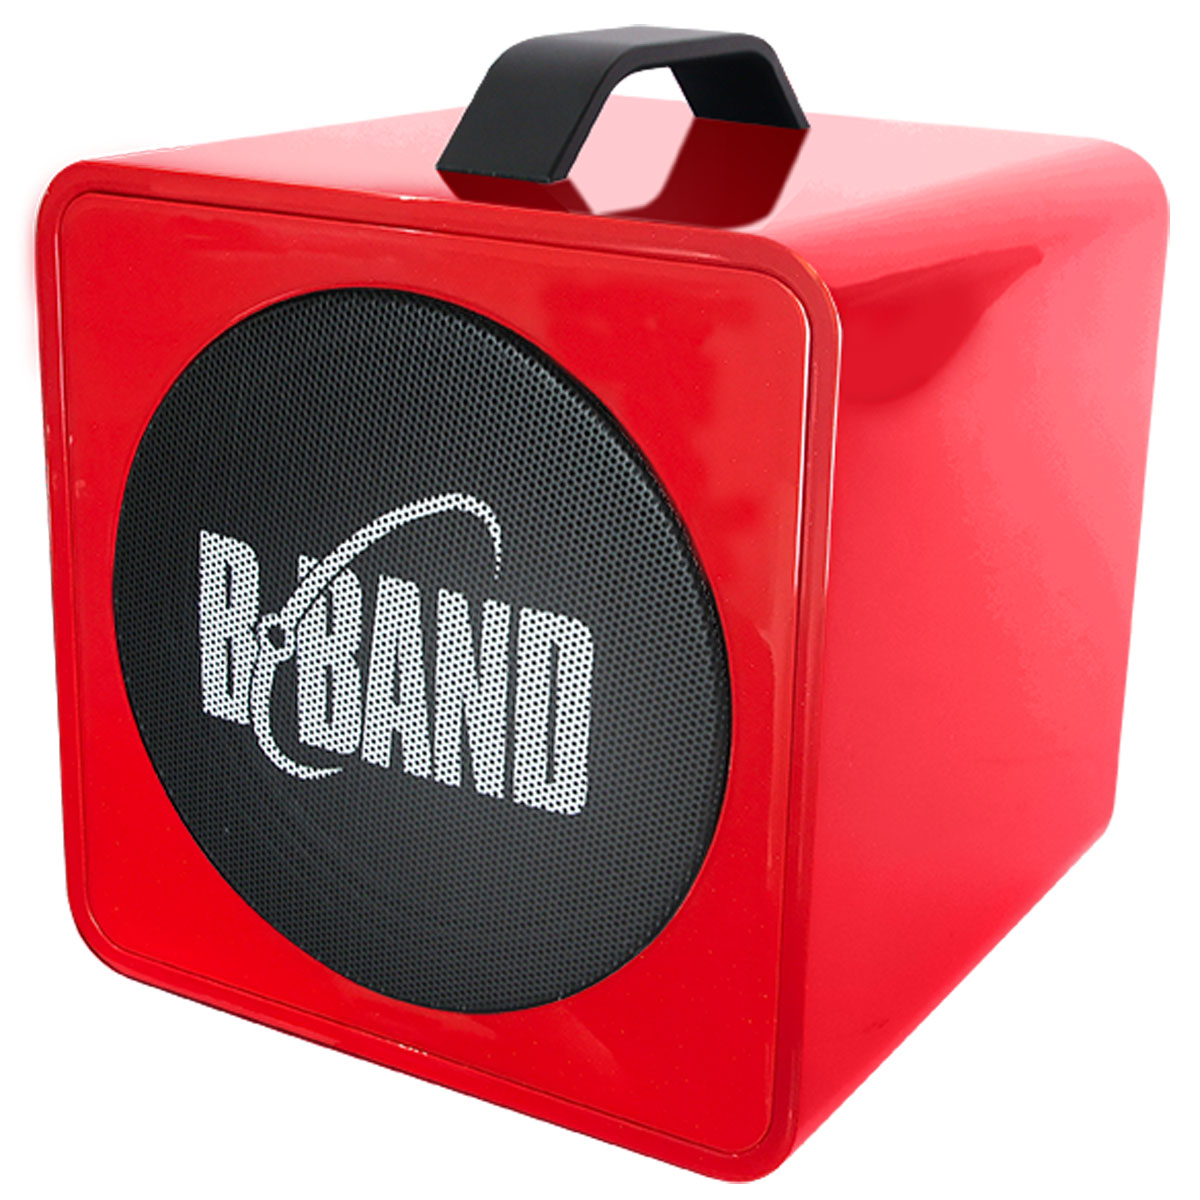 B-Band / AC45J Red Portable Acoustic Amplifier 充電式 ポータブルアンプ 《予約注文/6月30日発売予定》